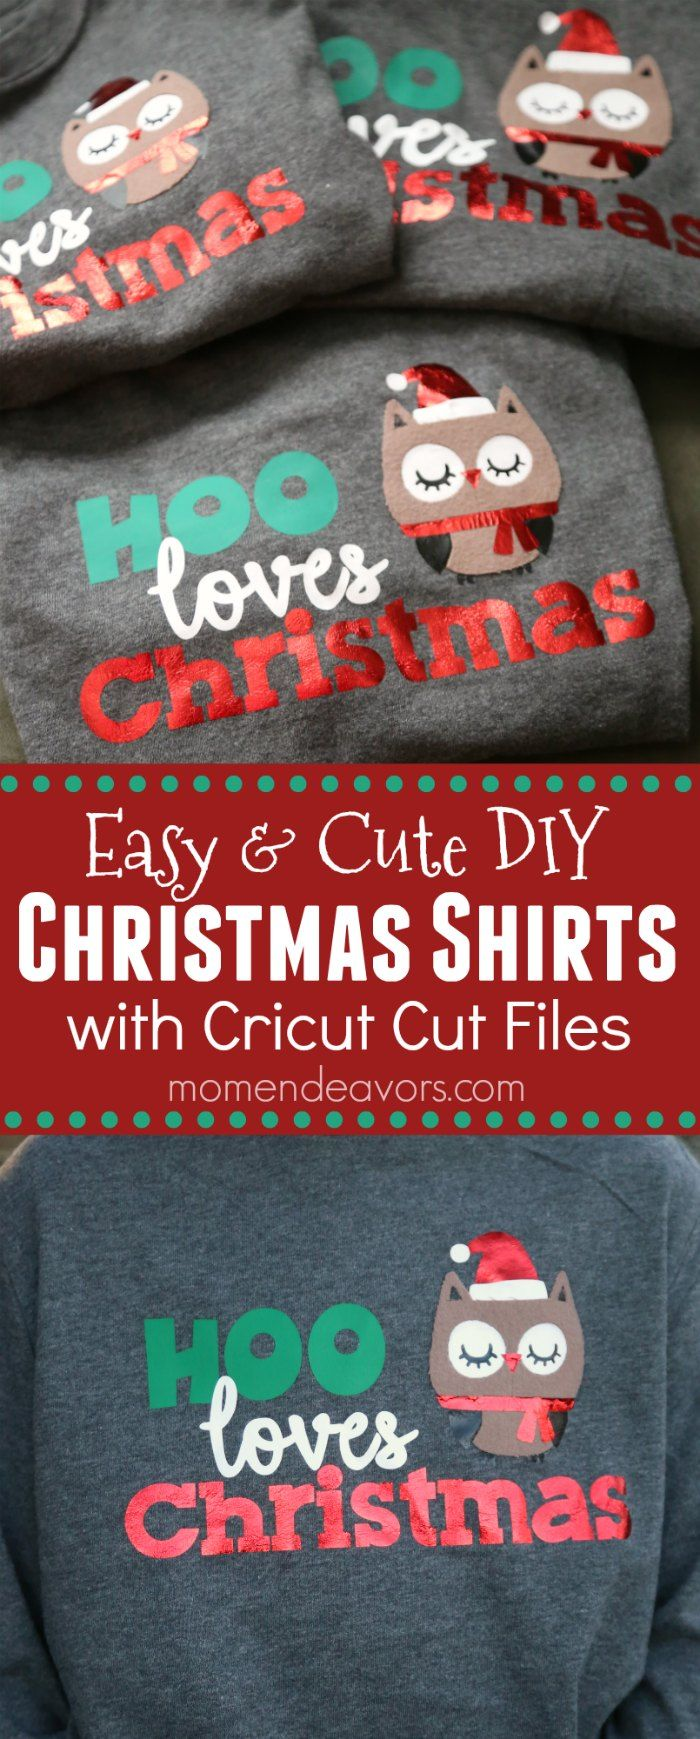 "Cute & Easy DIY Christmas Shirts for Kids - click to download the cute ""Hoo Loves Christmas"" Owl Cricut Cut File Design! #CricutHoliday #CricutMade #ad"